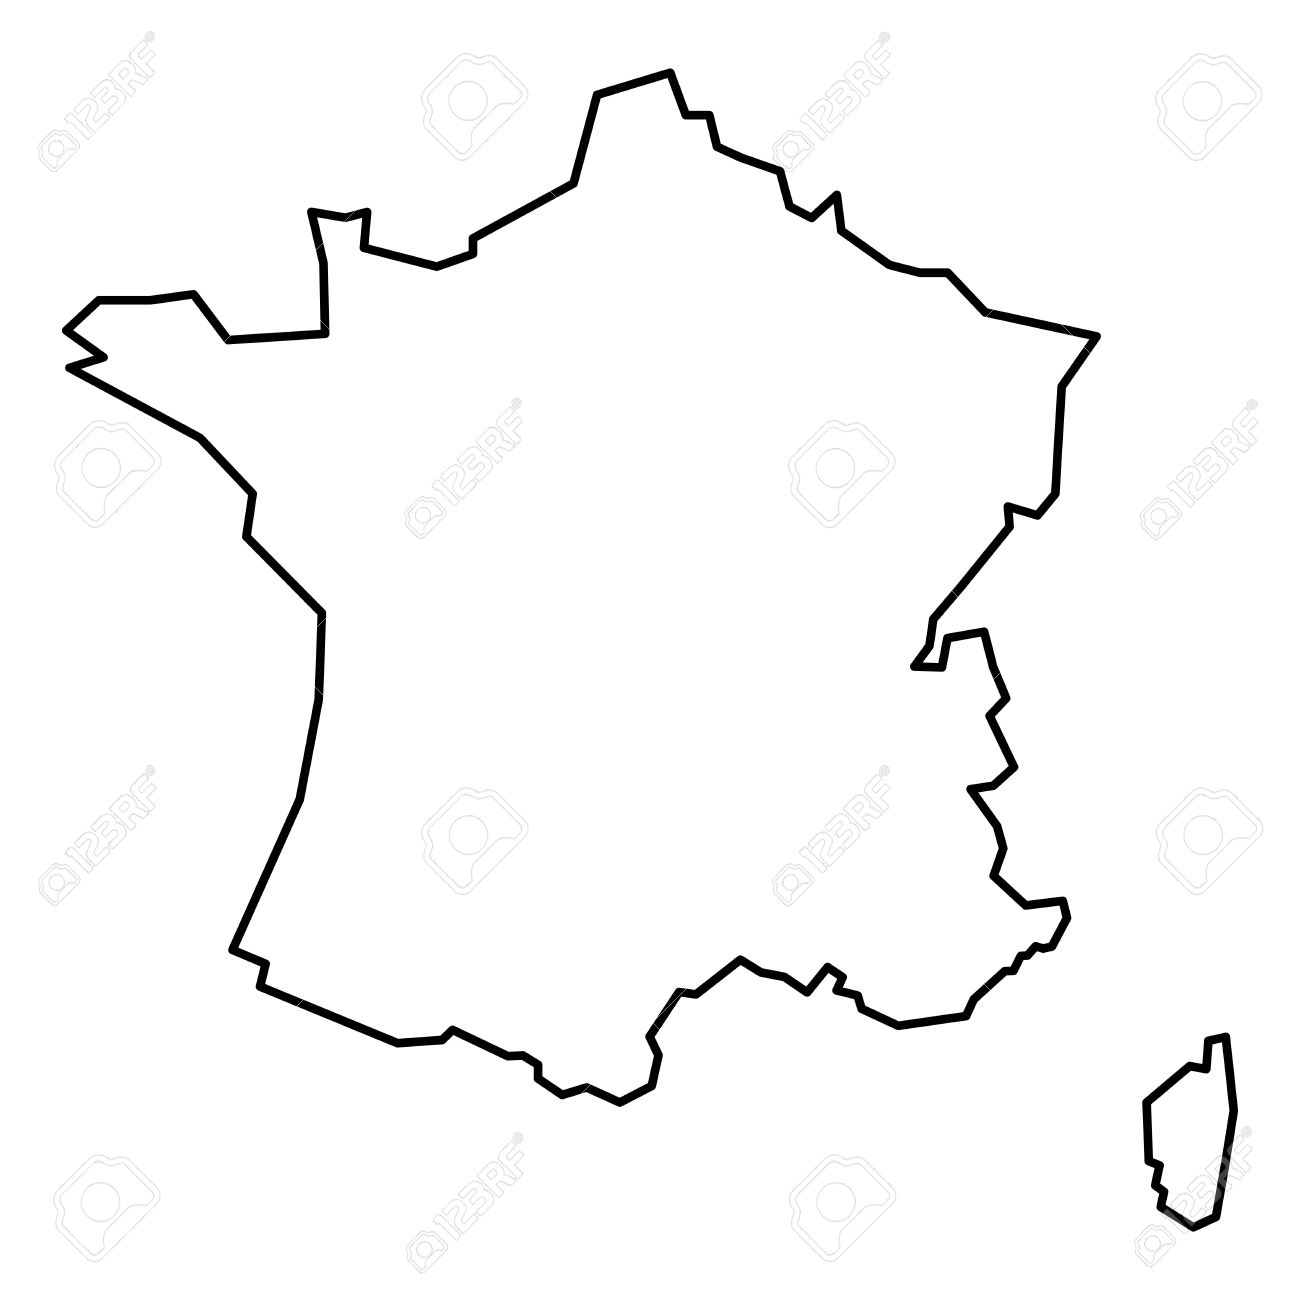 Simple Contour Map Of France Black Outline Map Isolated On White 1300x1300